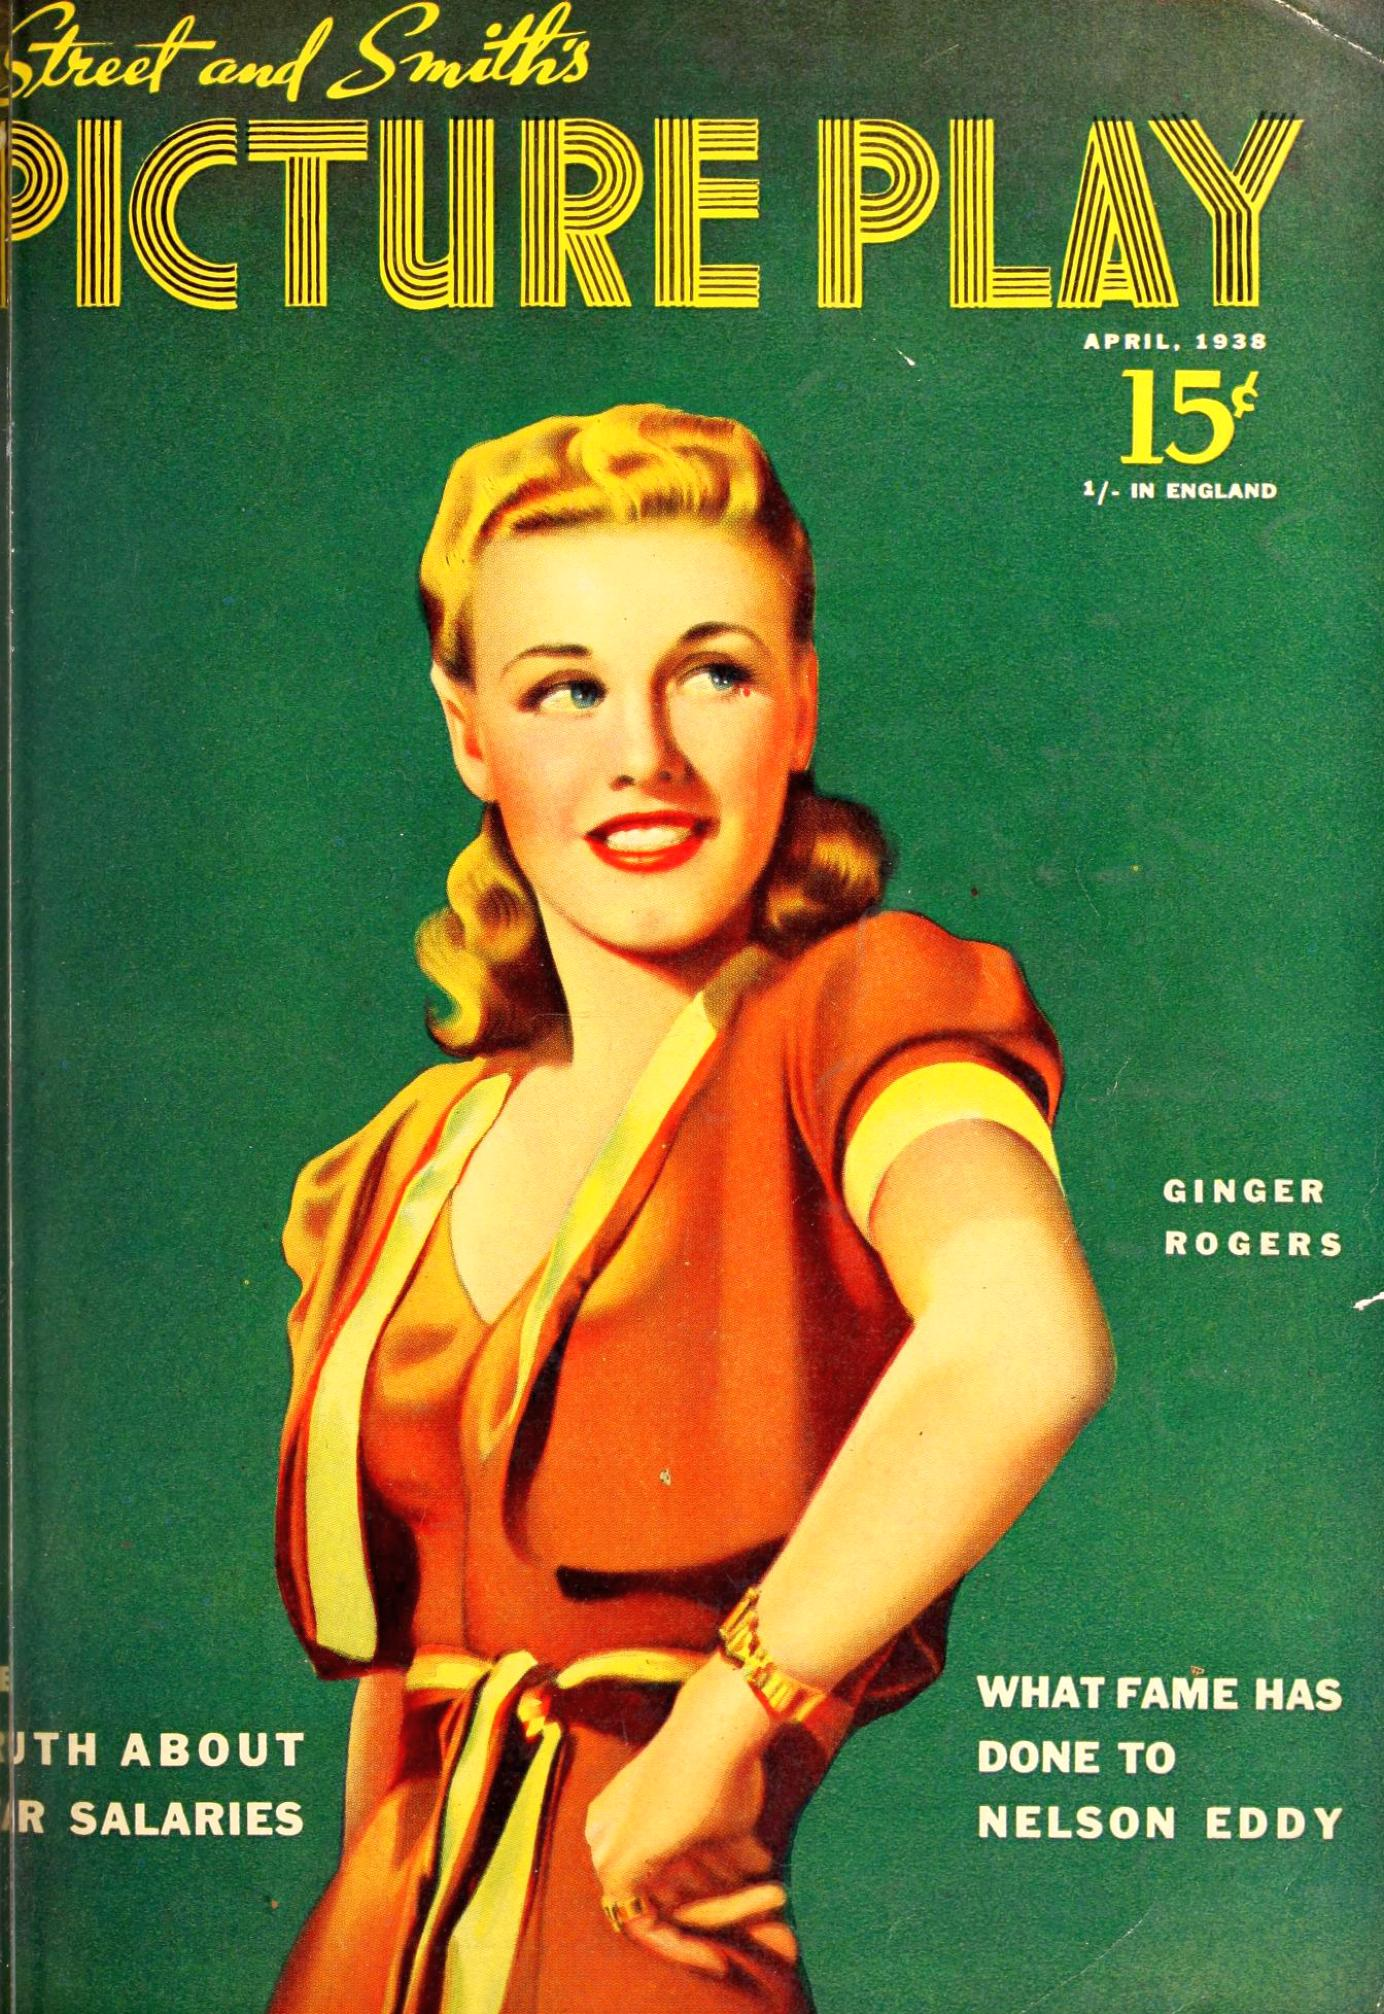 ginger rogers picture play april 1938 cover large